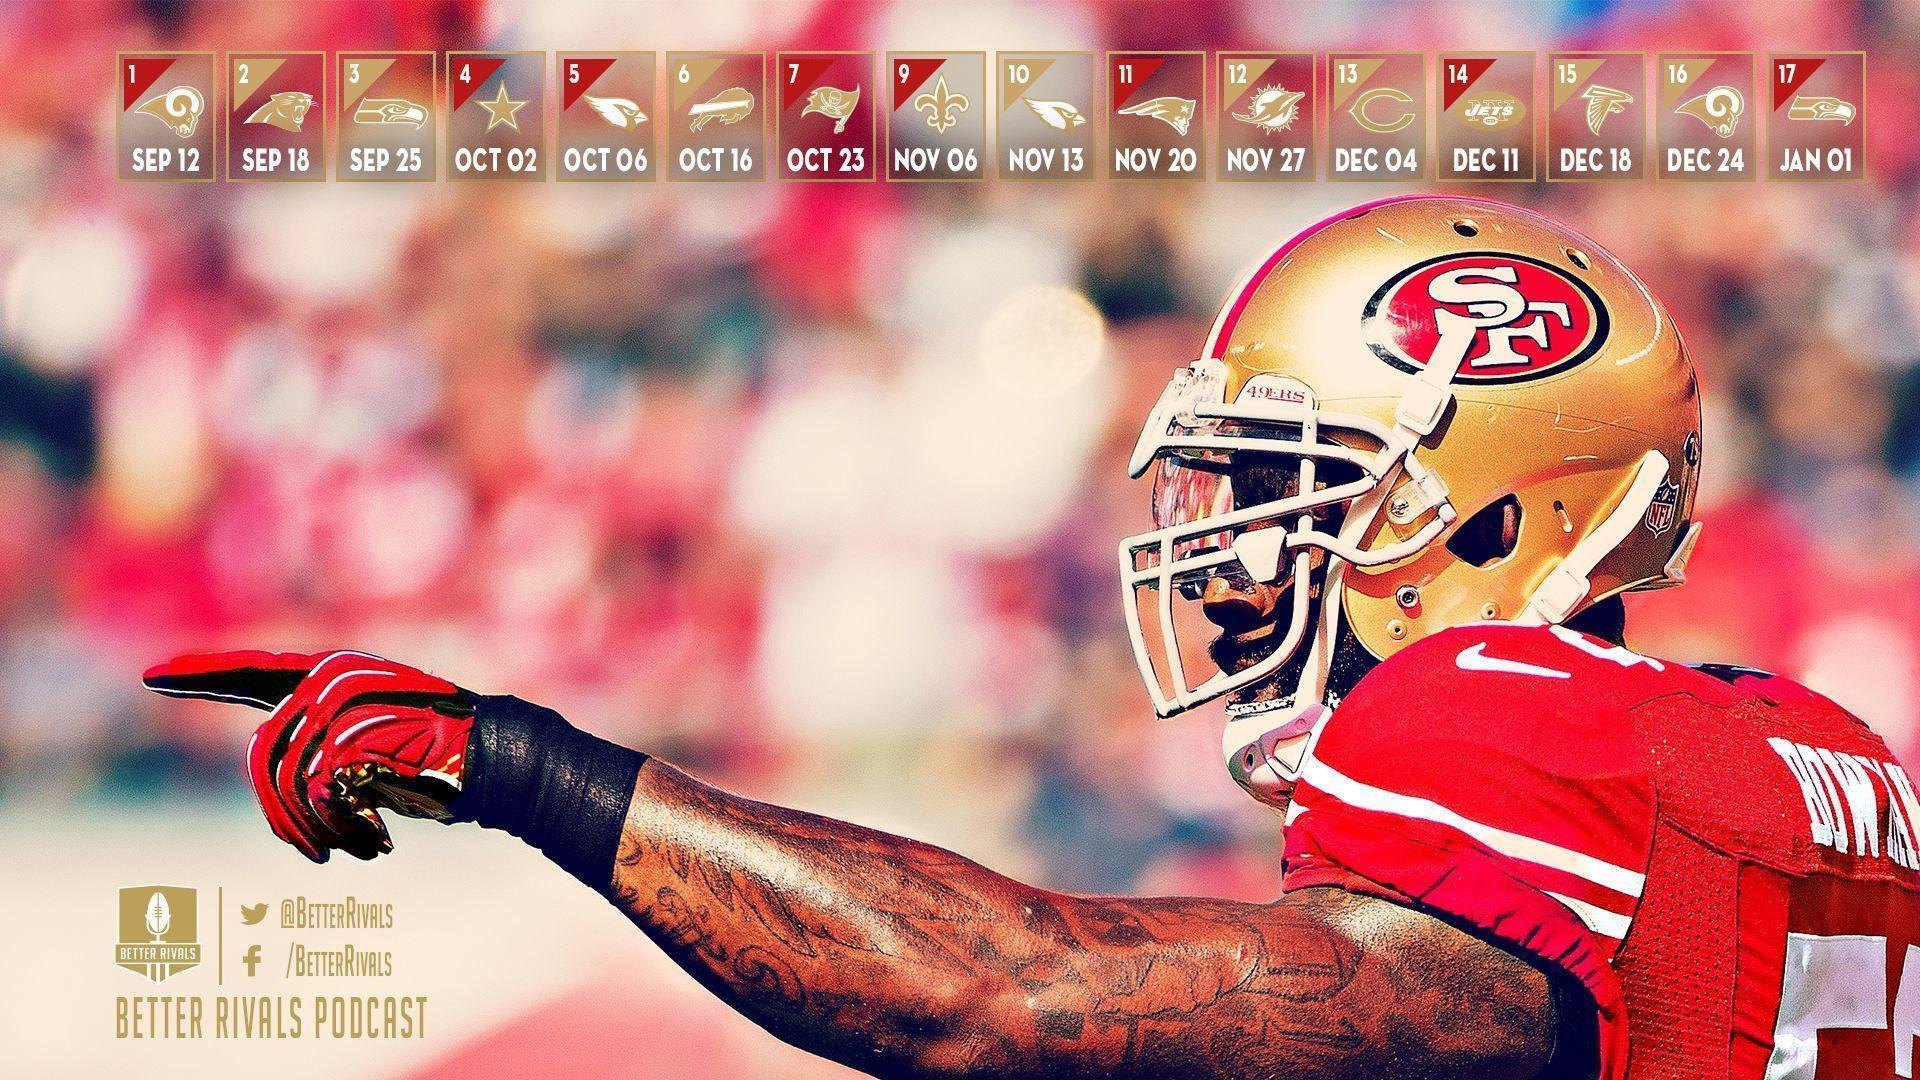 New 49ers Wallpapers for Desktop and Mobile - Niners Nation